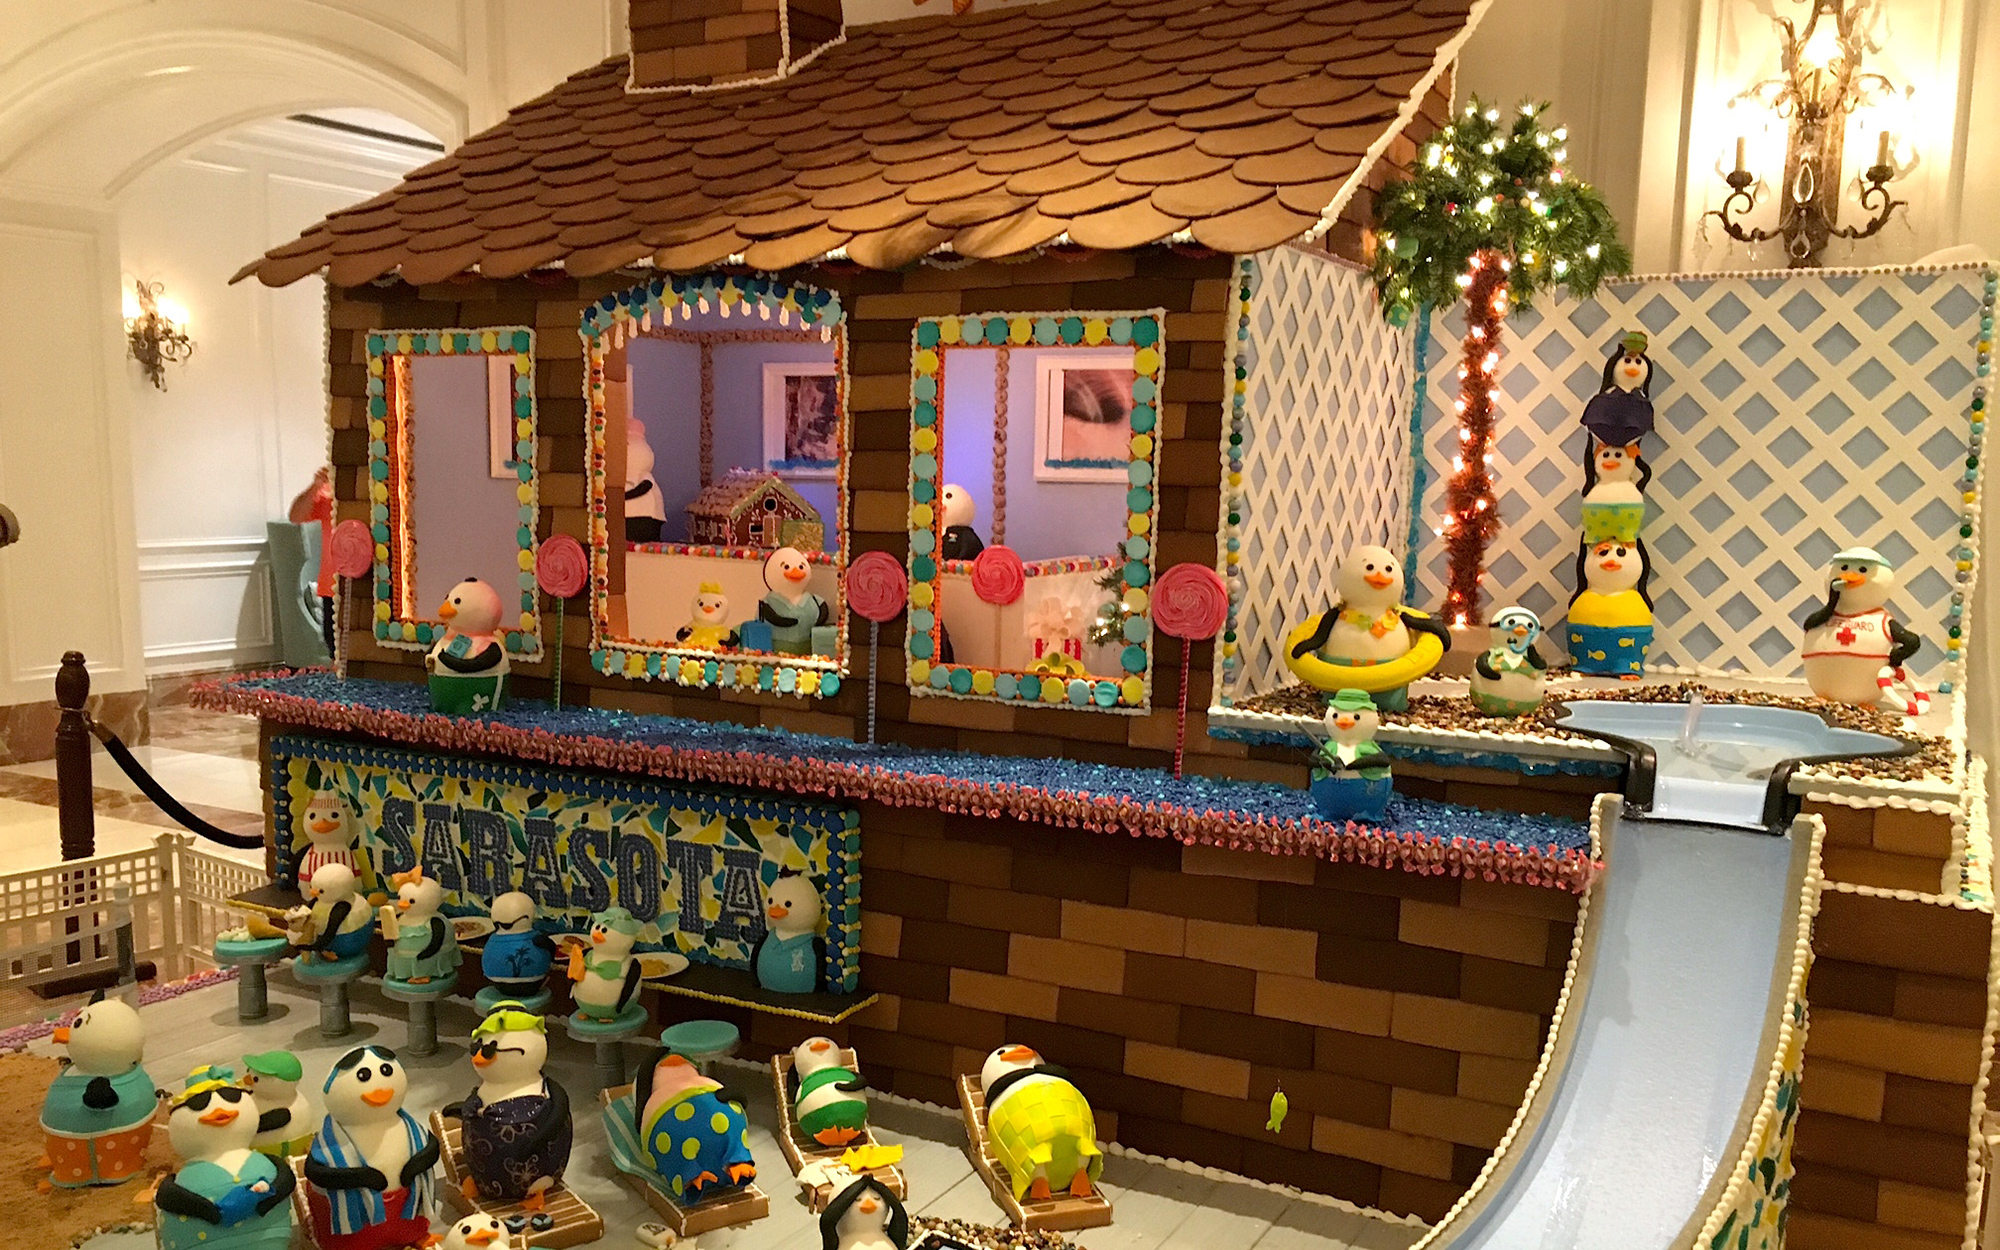 The Best Hotel Gingerbread Houses: The Ritz-Carlton, Sarasota, Florida